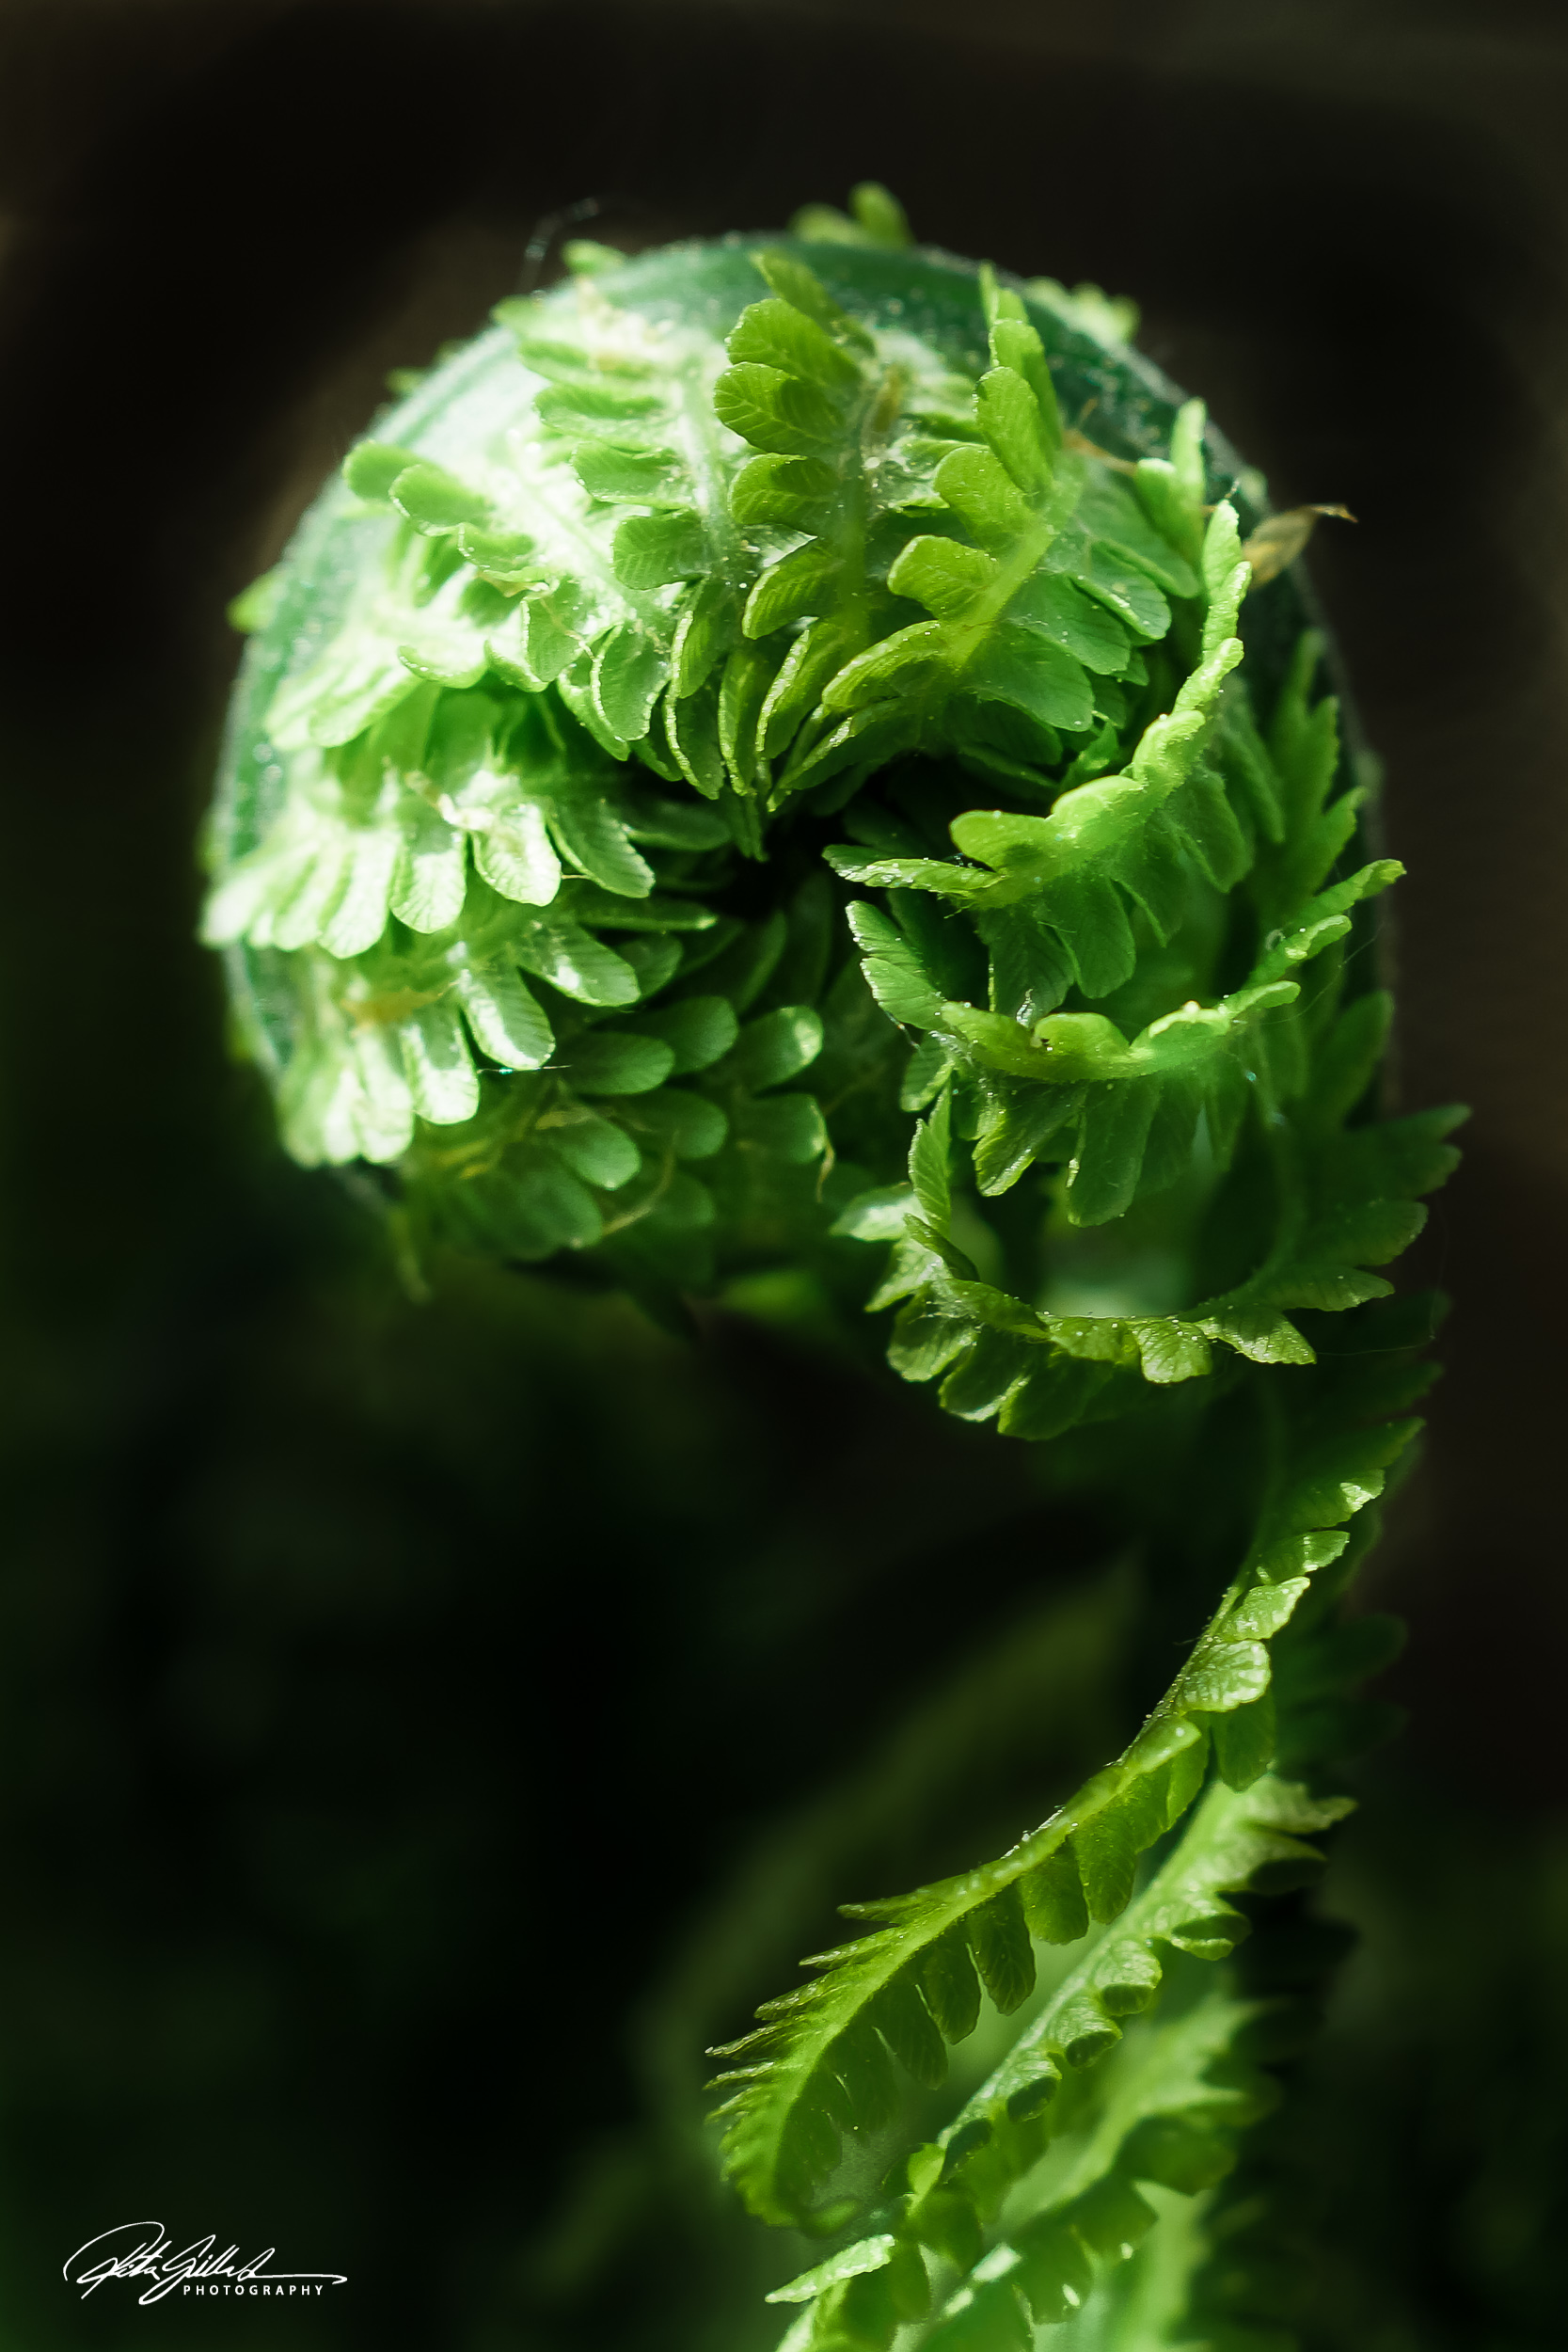 Fern ~ BW or color?